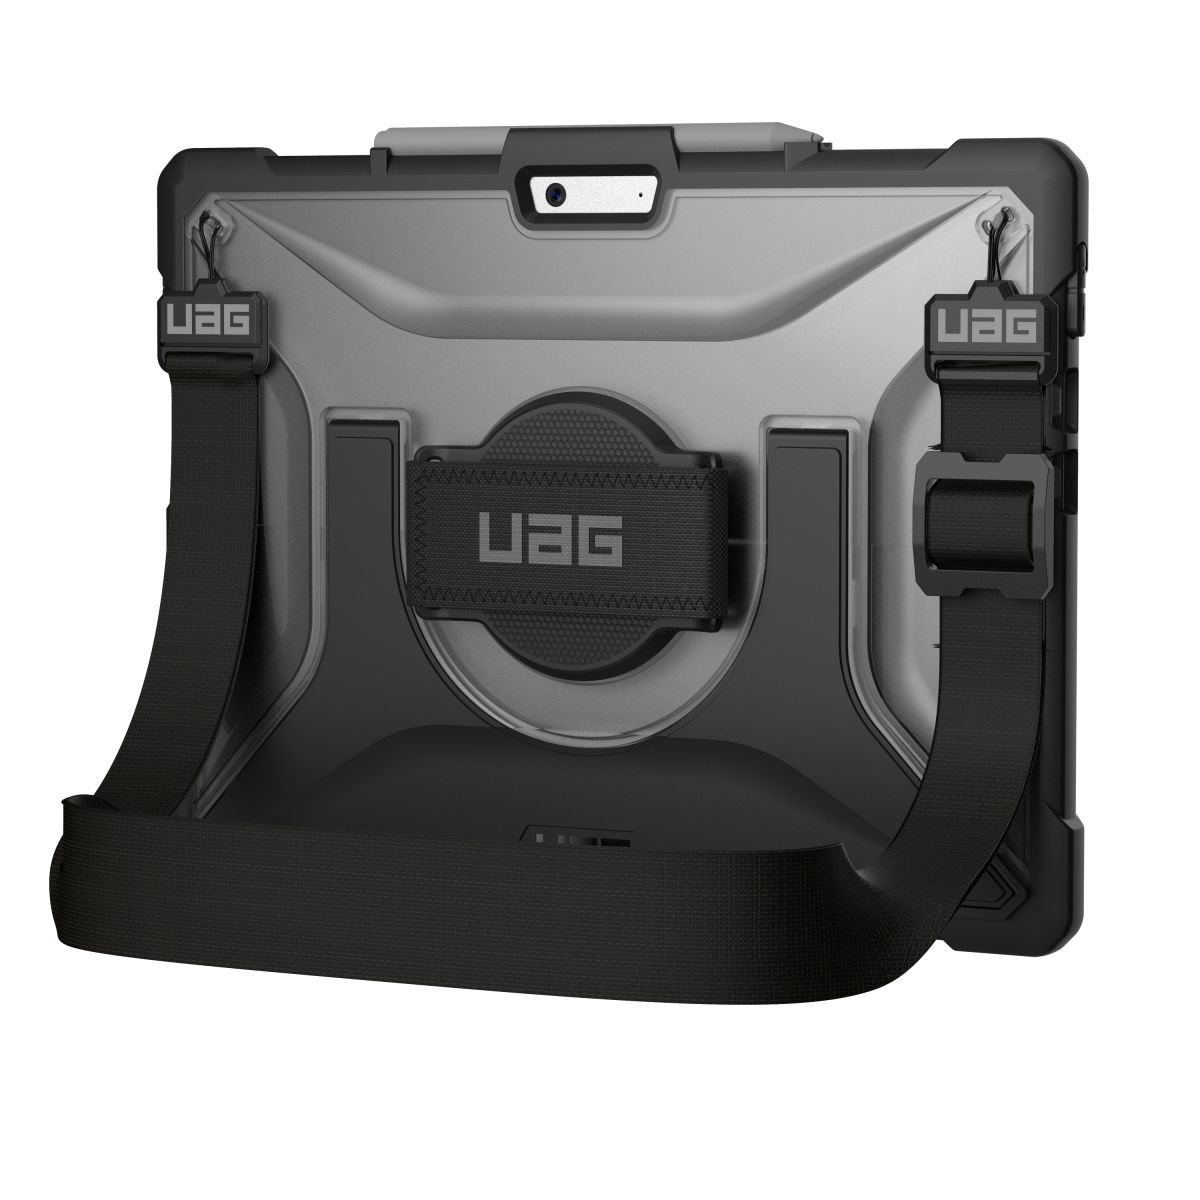 uag tablet surface pro x plasma ice